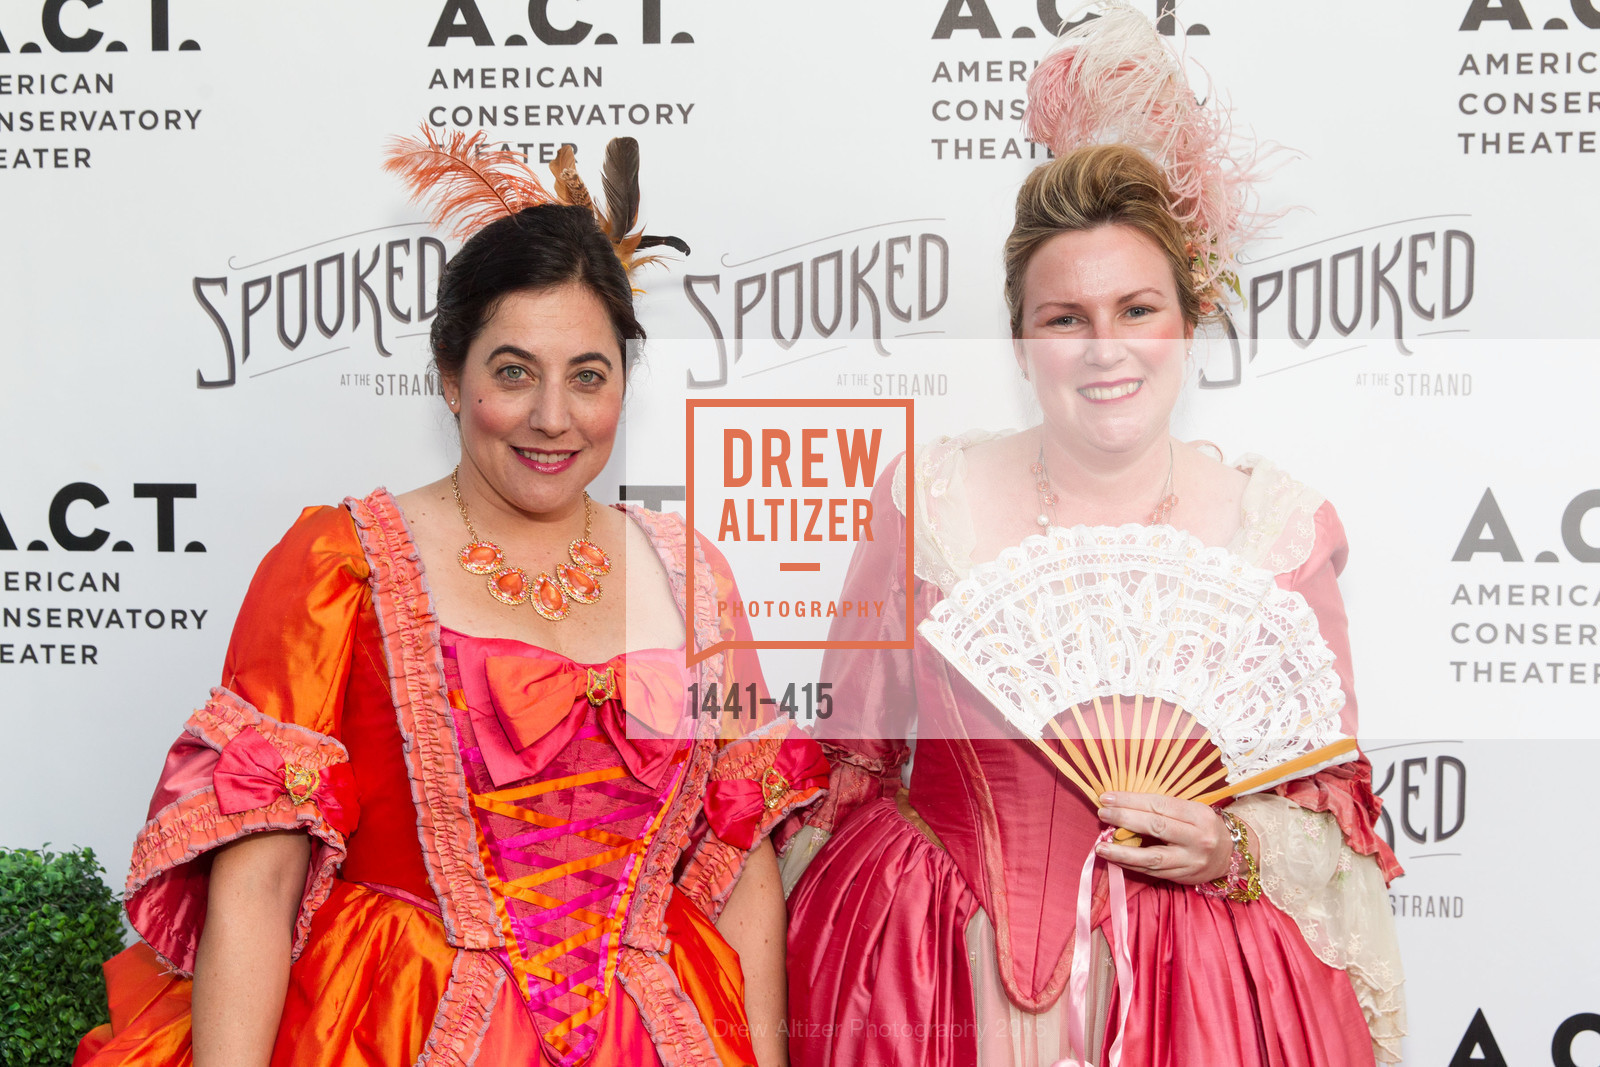 Diana Tauder, Christine Huhn, SPOOKED AT THE STRAND Presented by the American Conservatory Theater, The Strand Theater. 1127 Market Street, October 26th, 2015,Drew Altizer, Drew Altizer Photography, full-service agency, private events, San Francisco photographer, photographer california